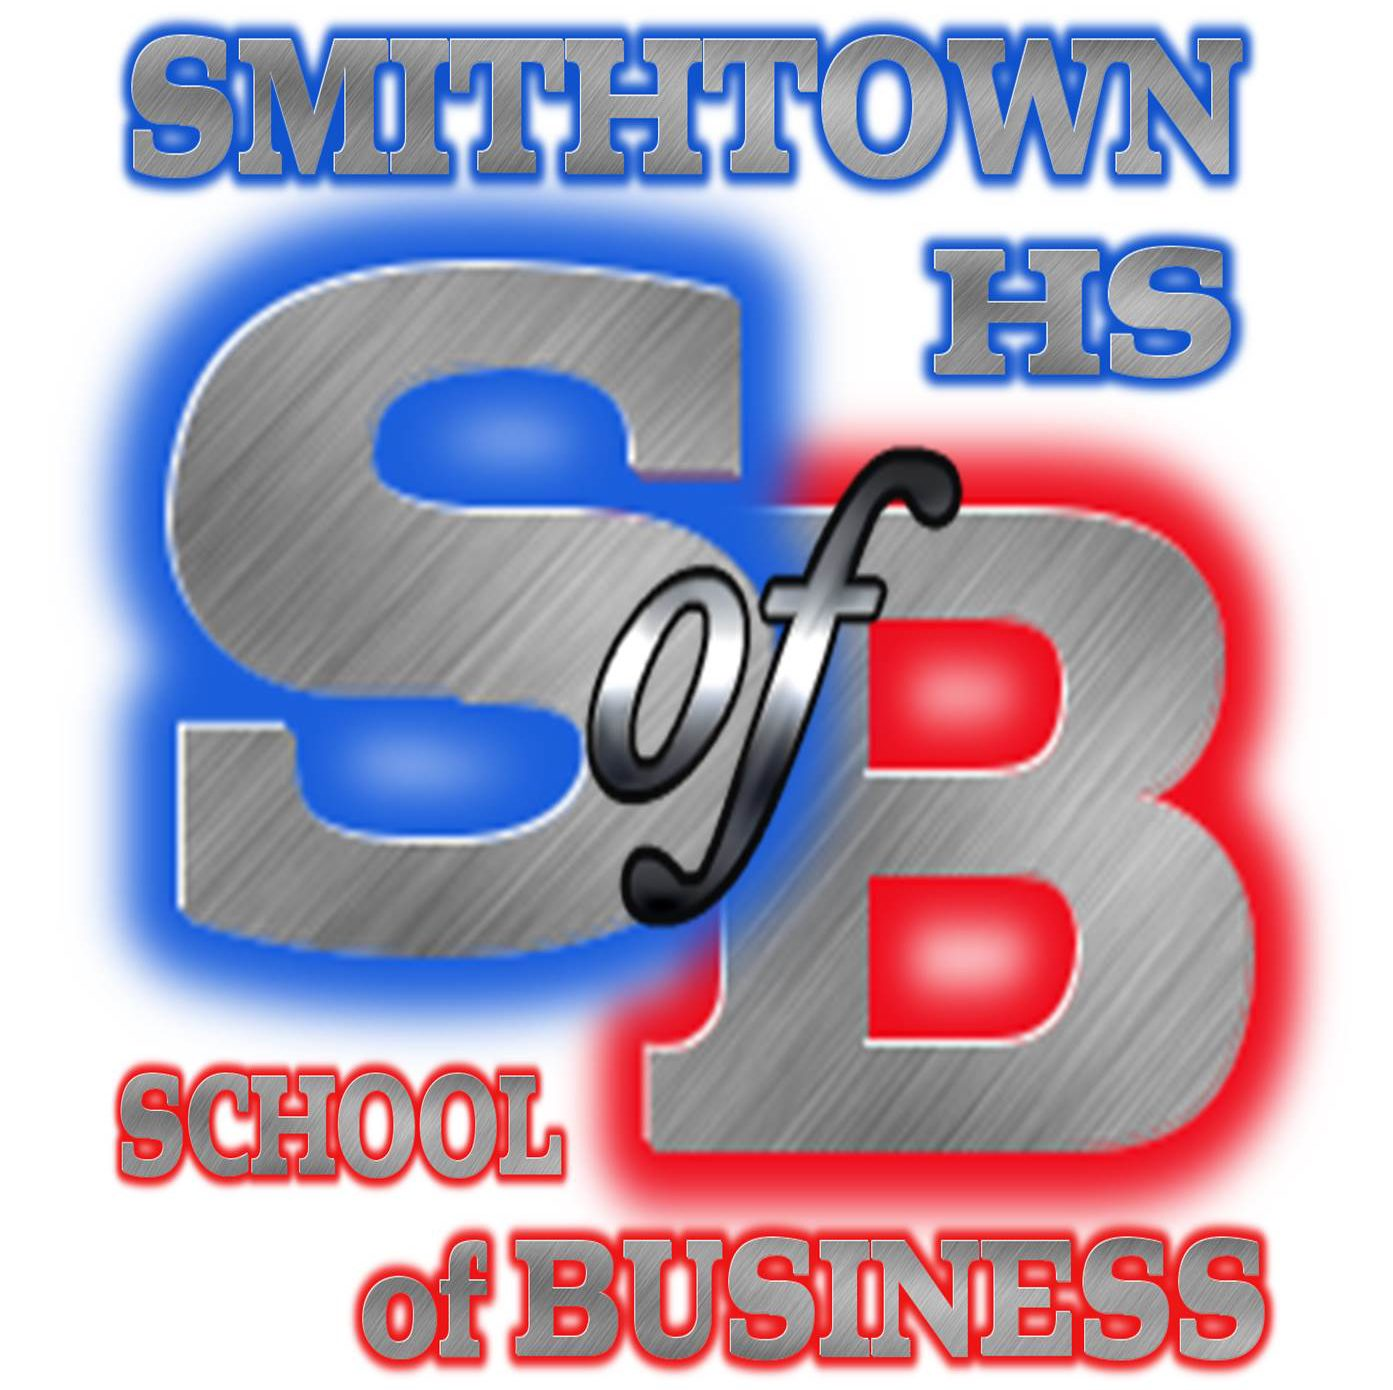 Smithtown High School School of Business